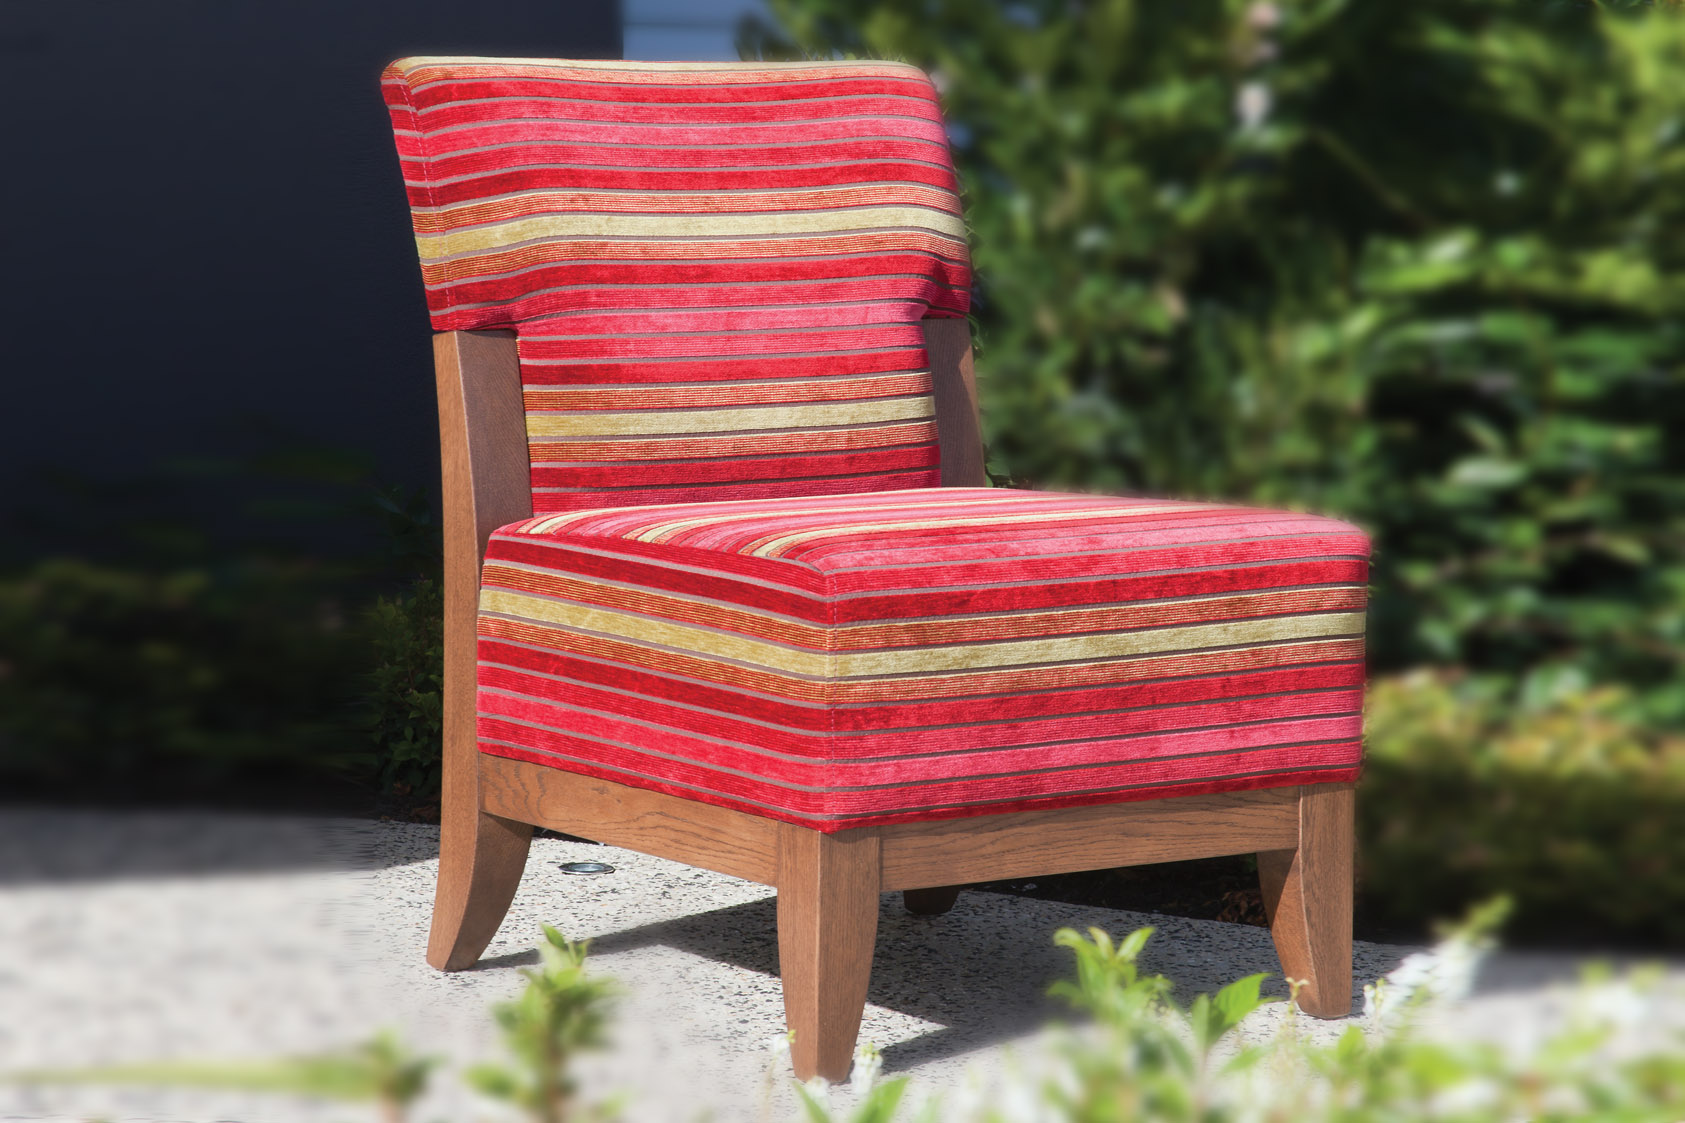 Chill Chairs Sofa Design And Manufacture Perth